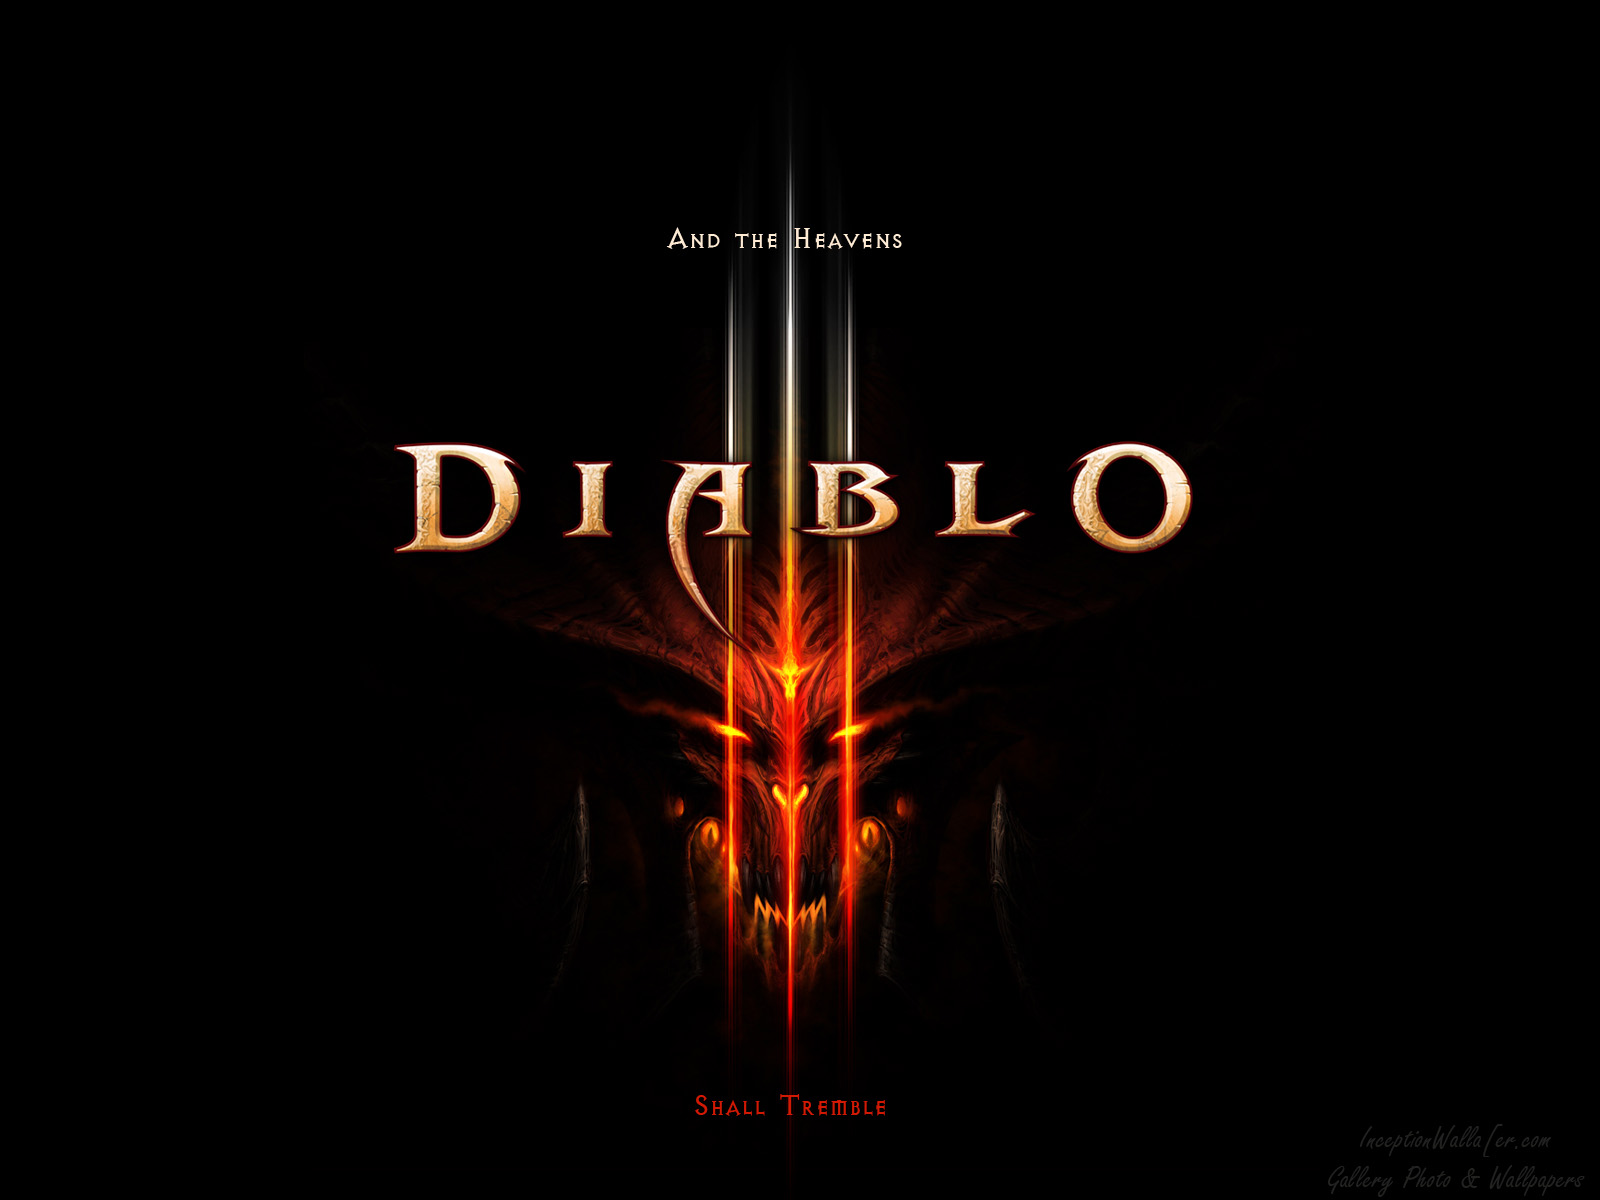 Free Download Diablo 3 Wallpaper Hd 1600x1200 For Your